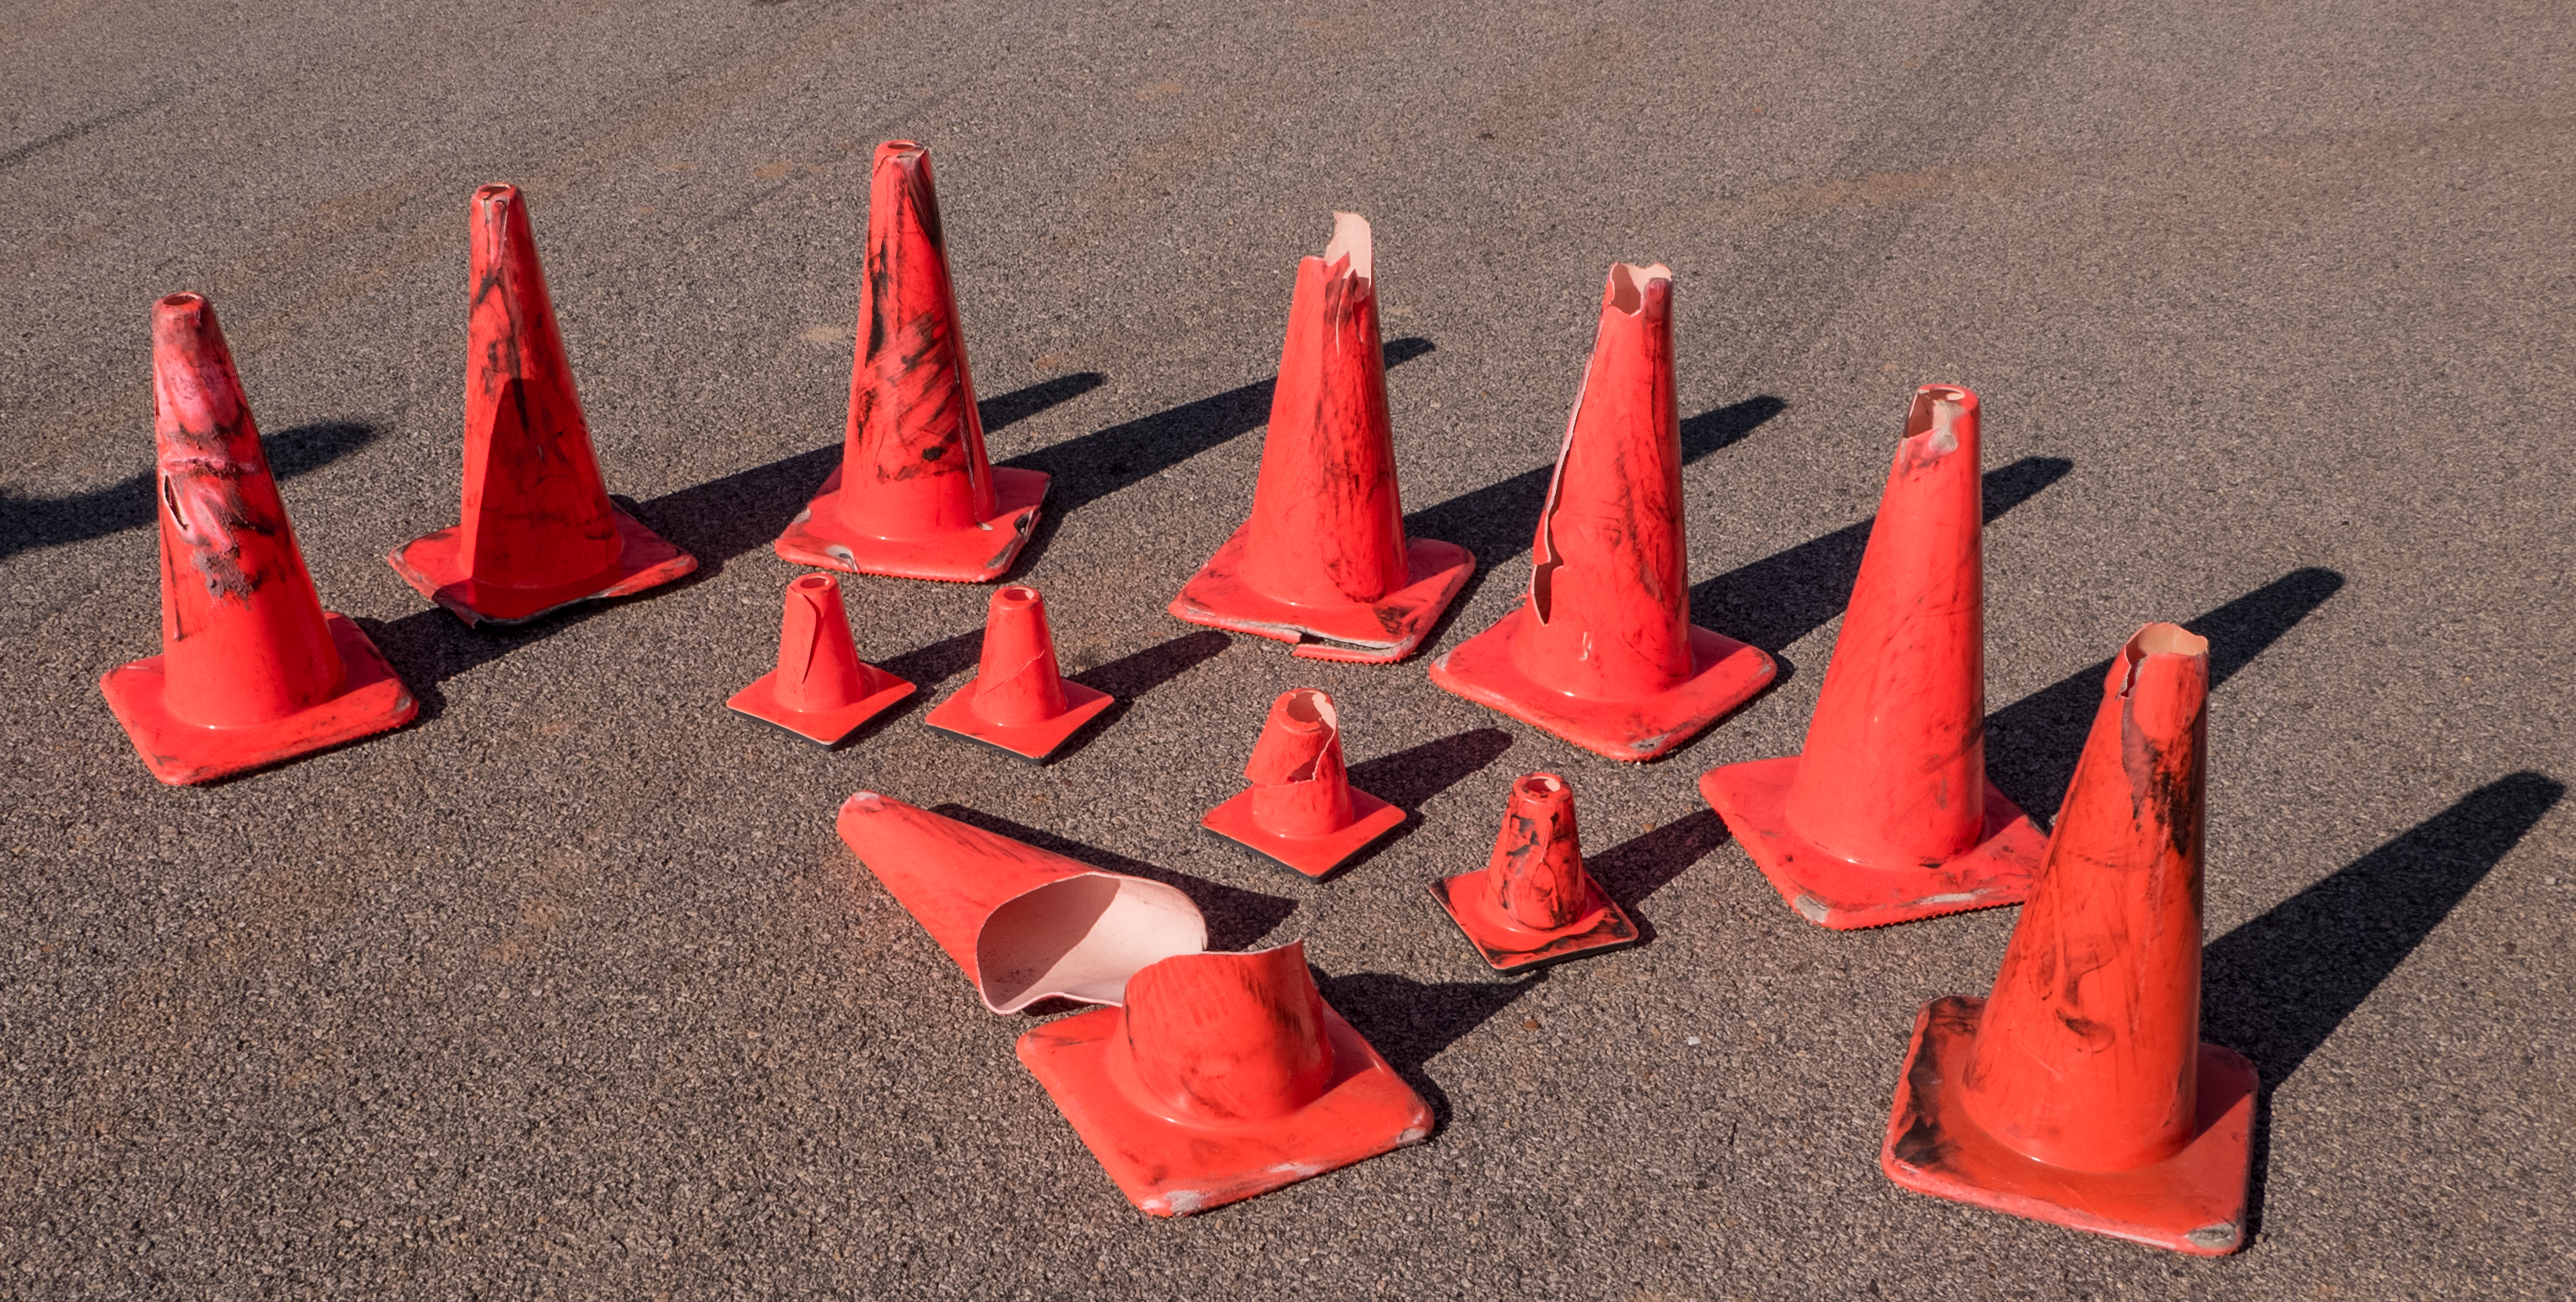 More 18 Inch Cones Please 00000